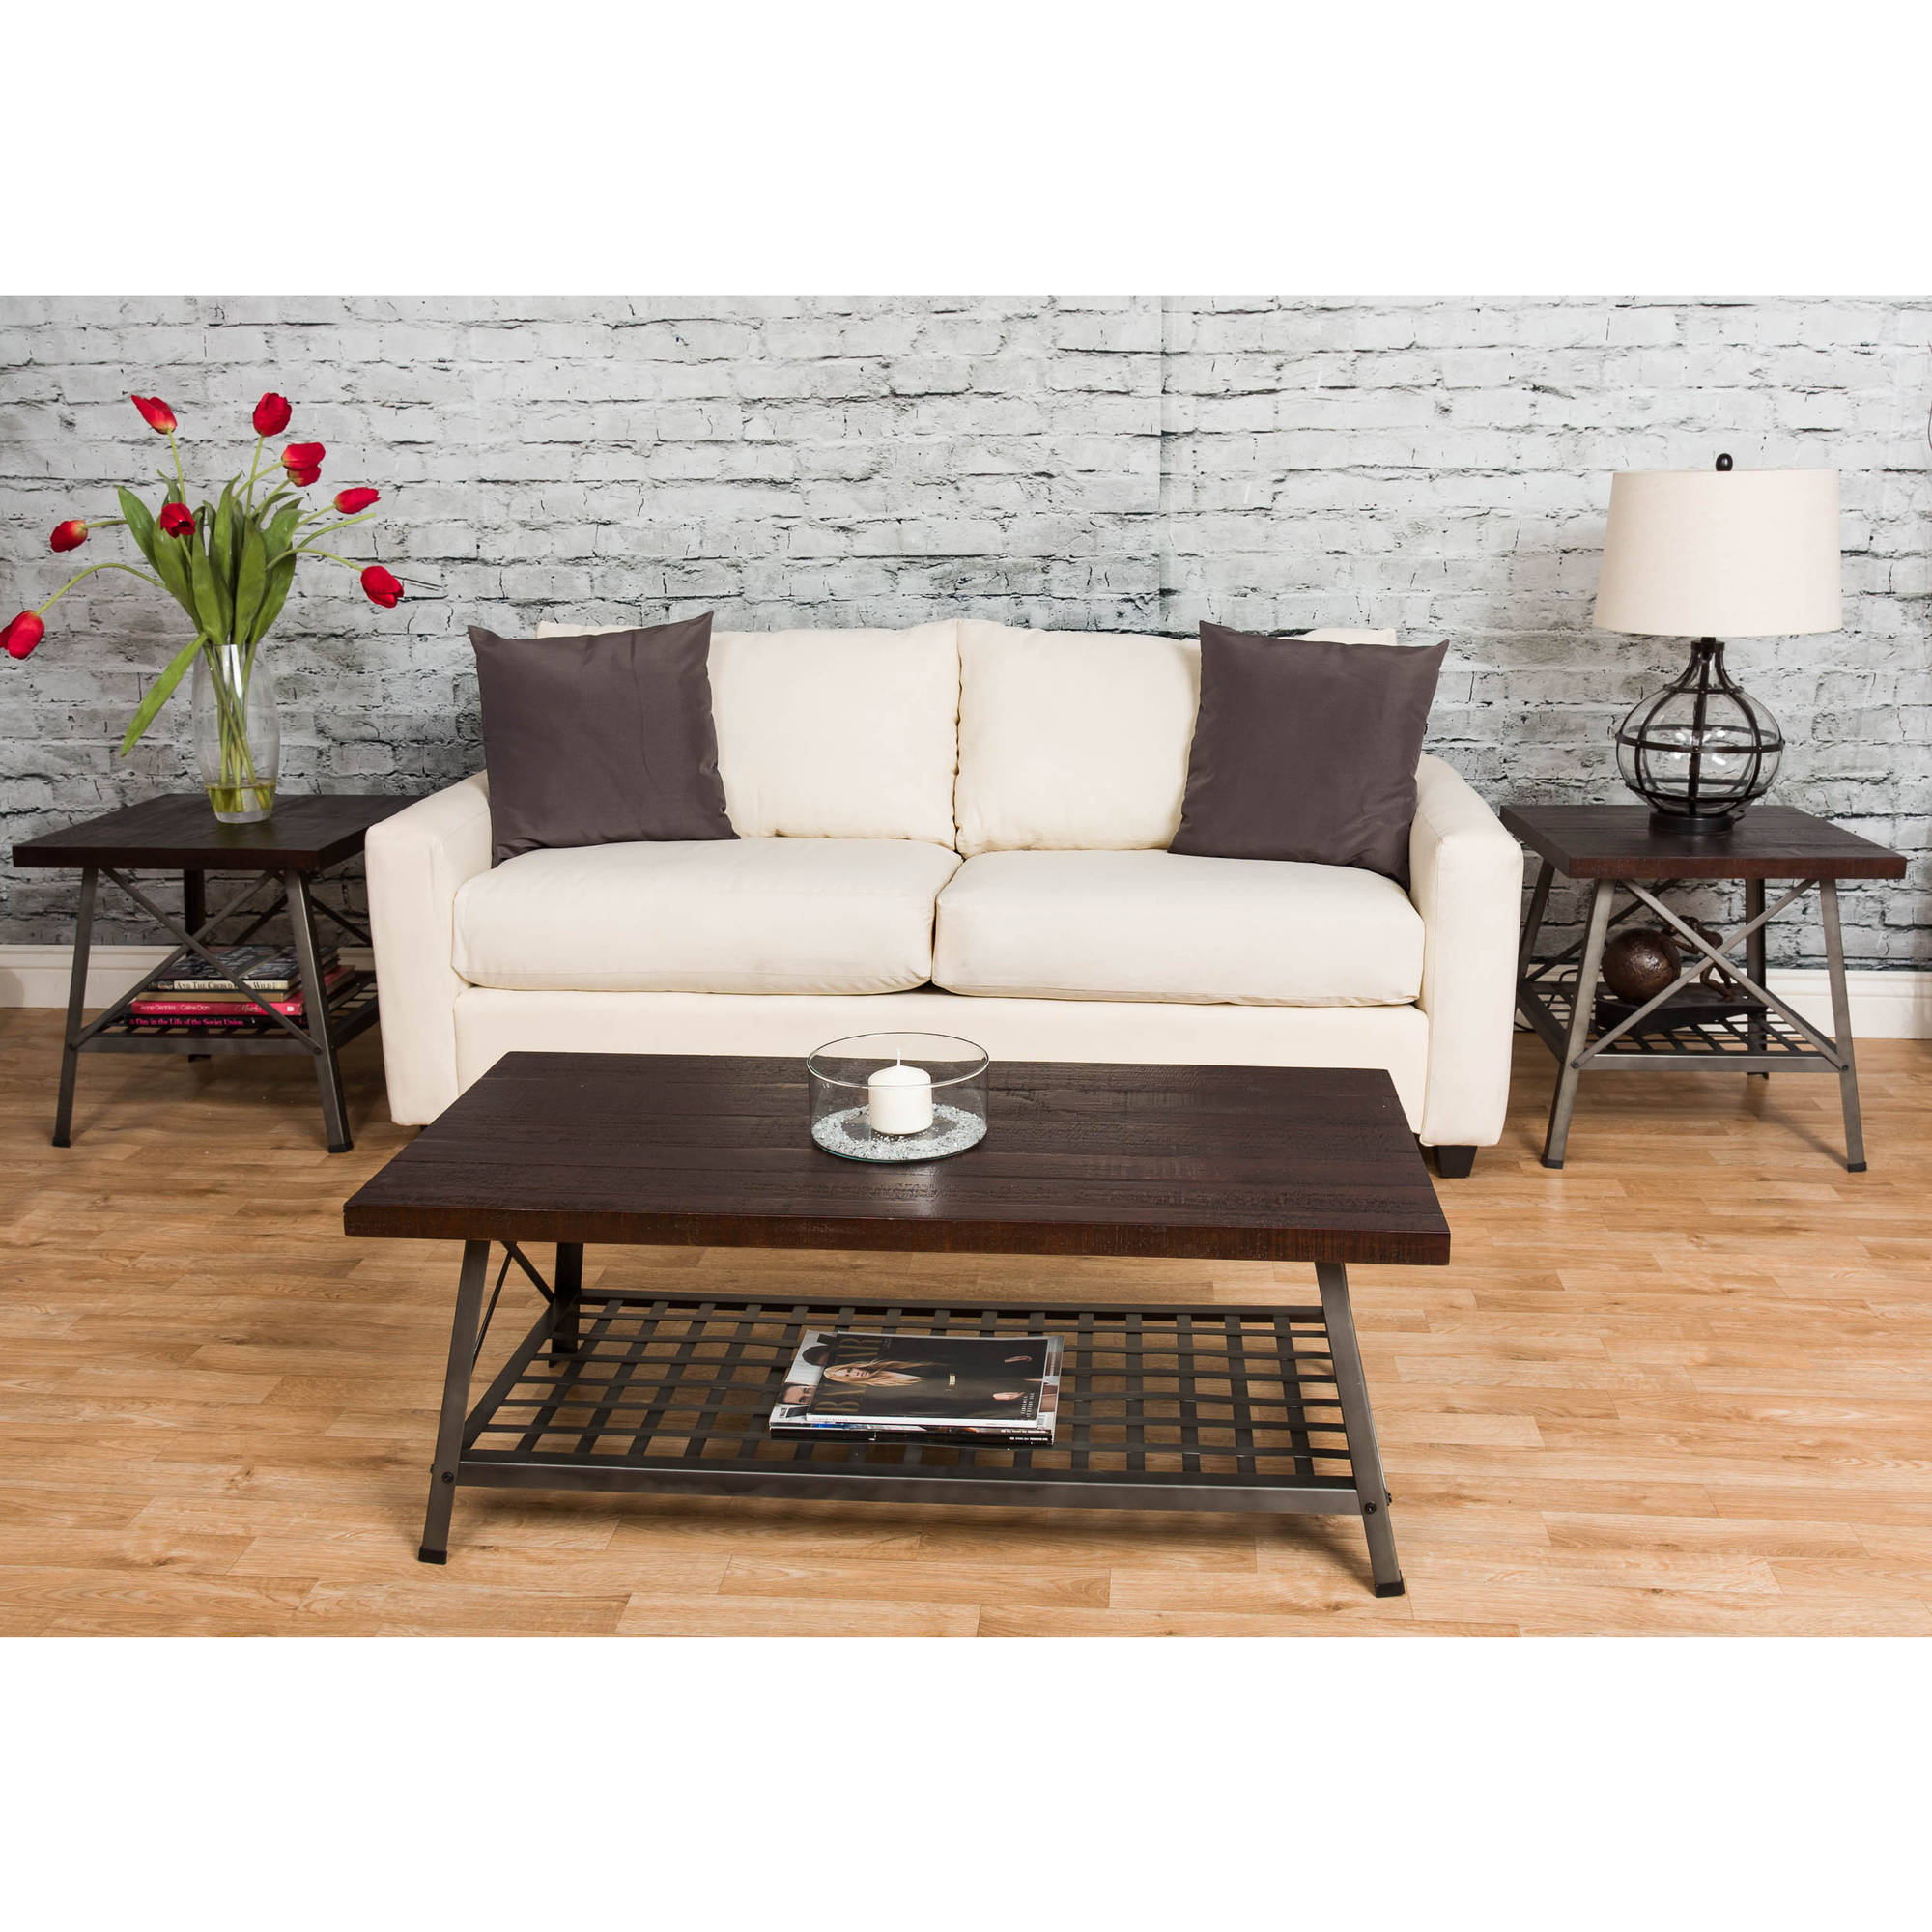 Starfish Furnishings Reclaimed Wood 3-Piece Occasional Table Set, Dark Merlot Finish